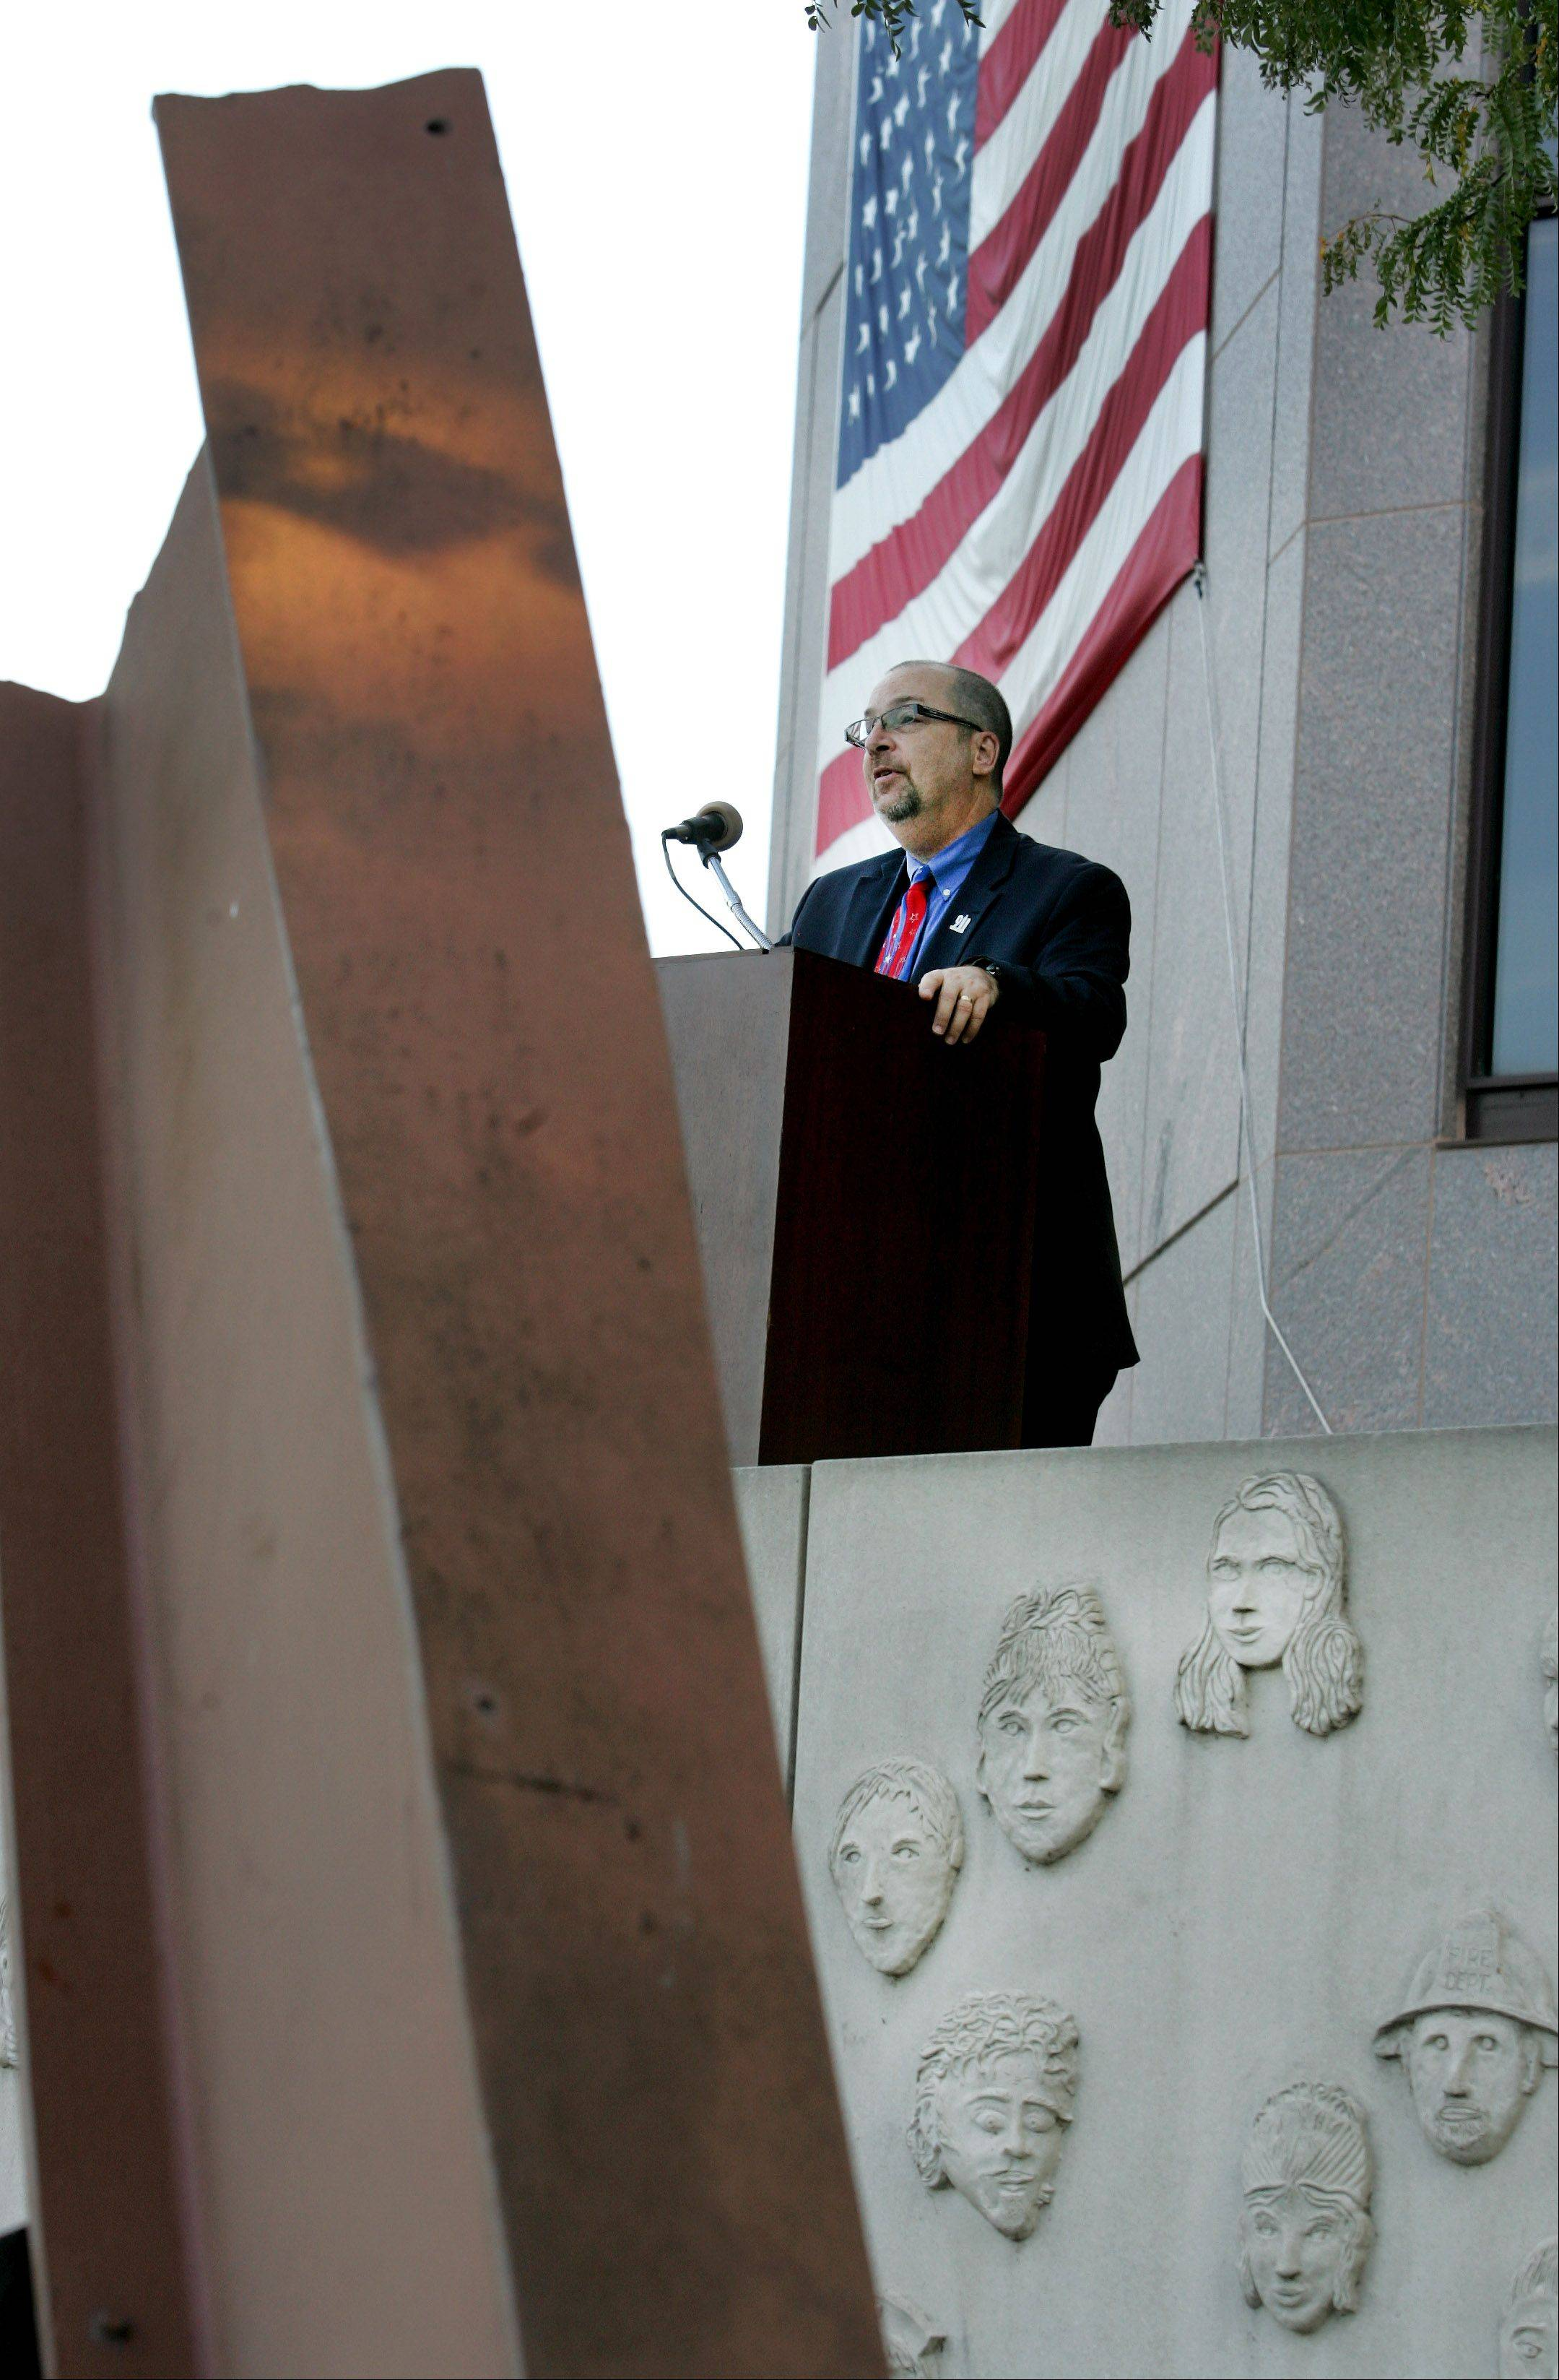 Joe Dittmar shares his experiences at the annual September 11 remembrance at the Cmdr. Dan Shanower Memorial in Naperville on Tuesday. On September 11, 2001, Dittmar was attending a meeting on the 105th floor of Two World Trade Center with 54 executives from various commercial insurance carriers. He and six others survived that day.